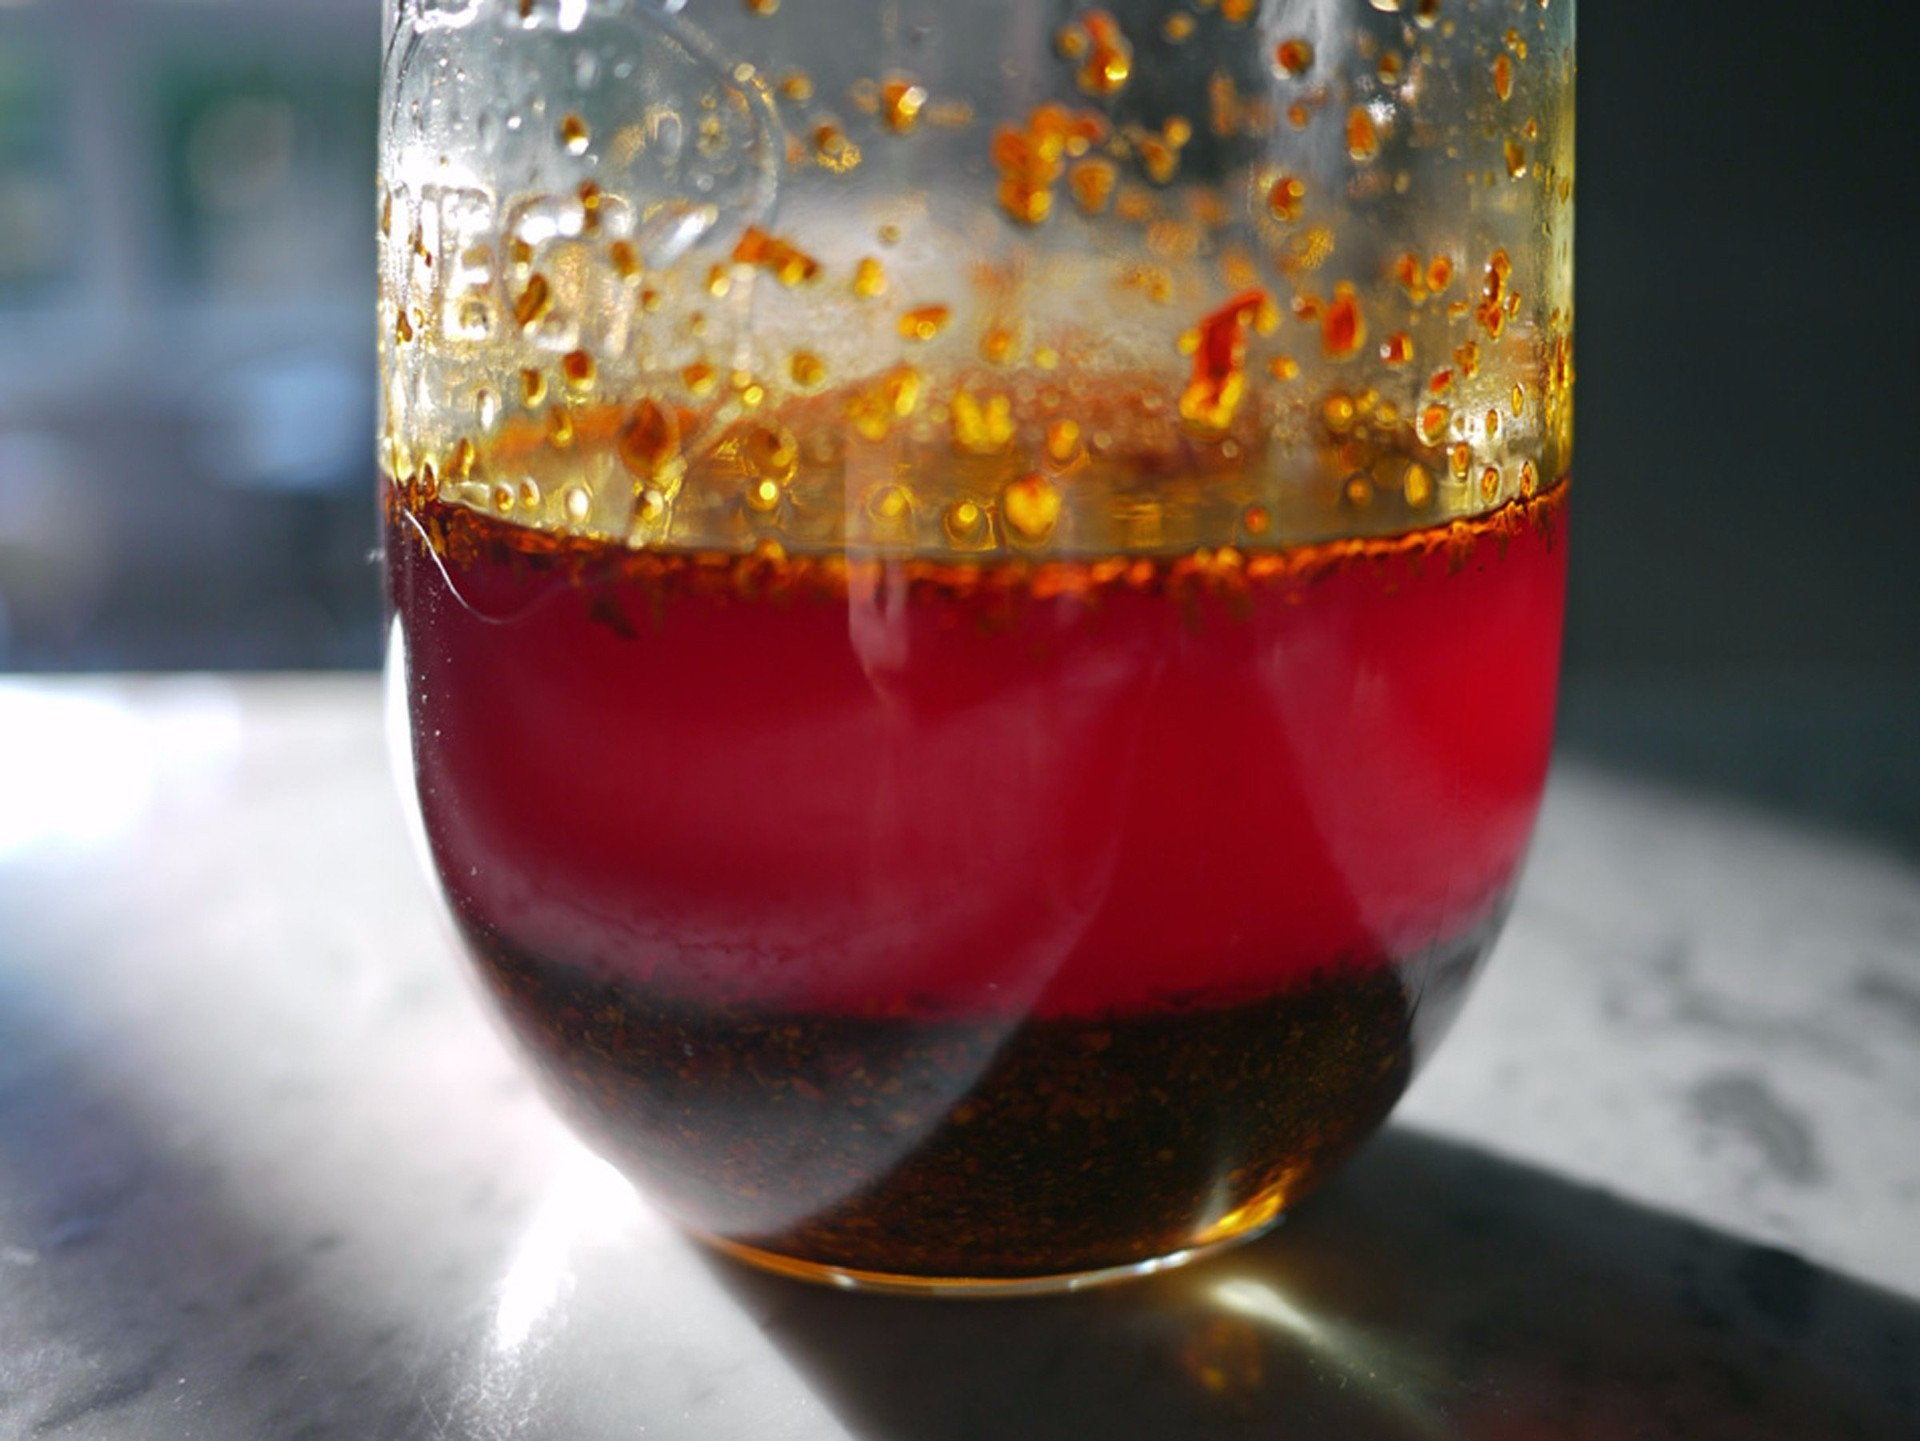 Chili oil with Sichuan chili flakes